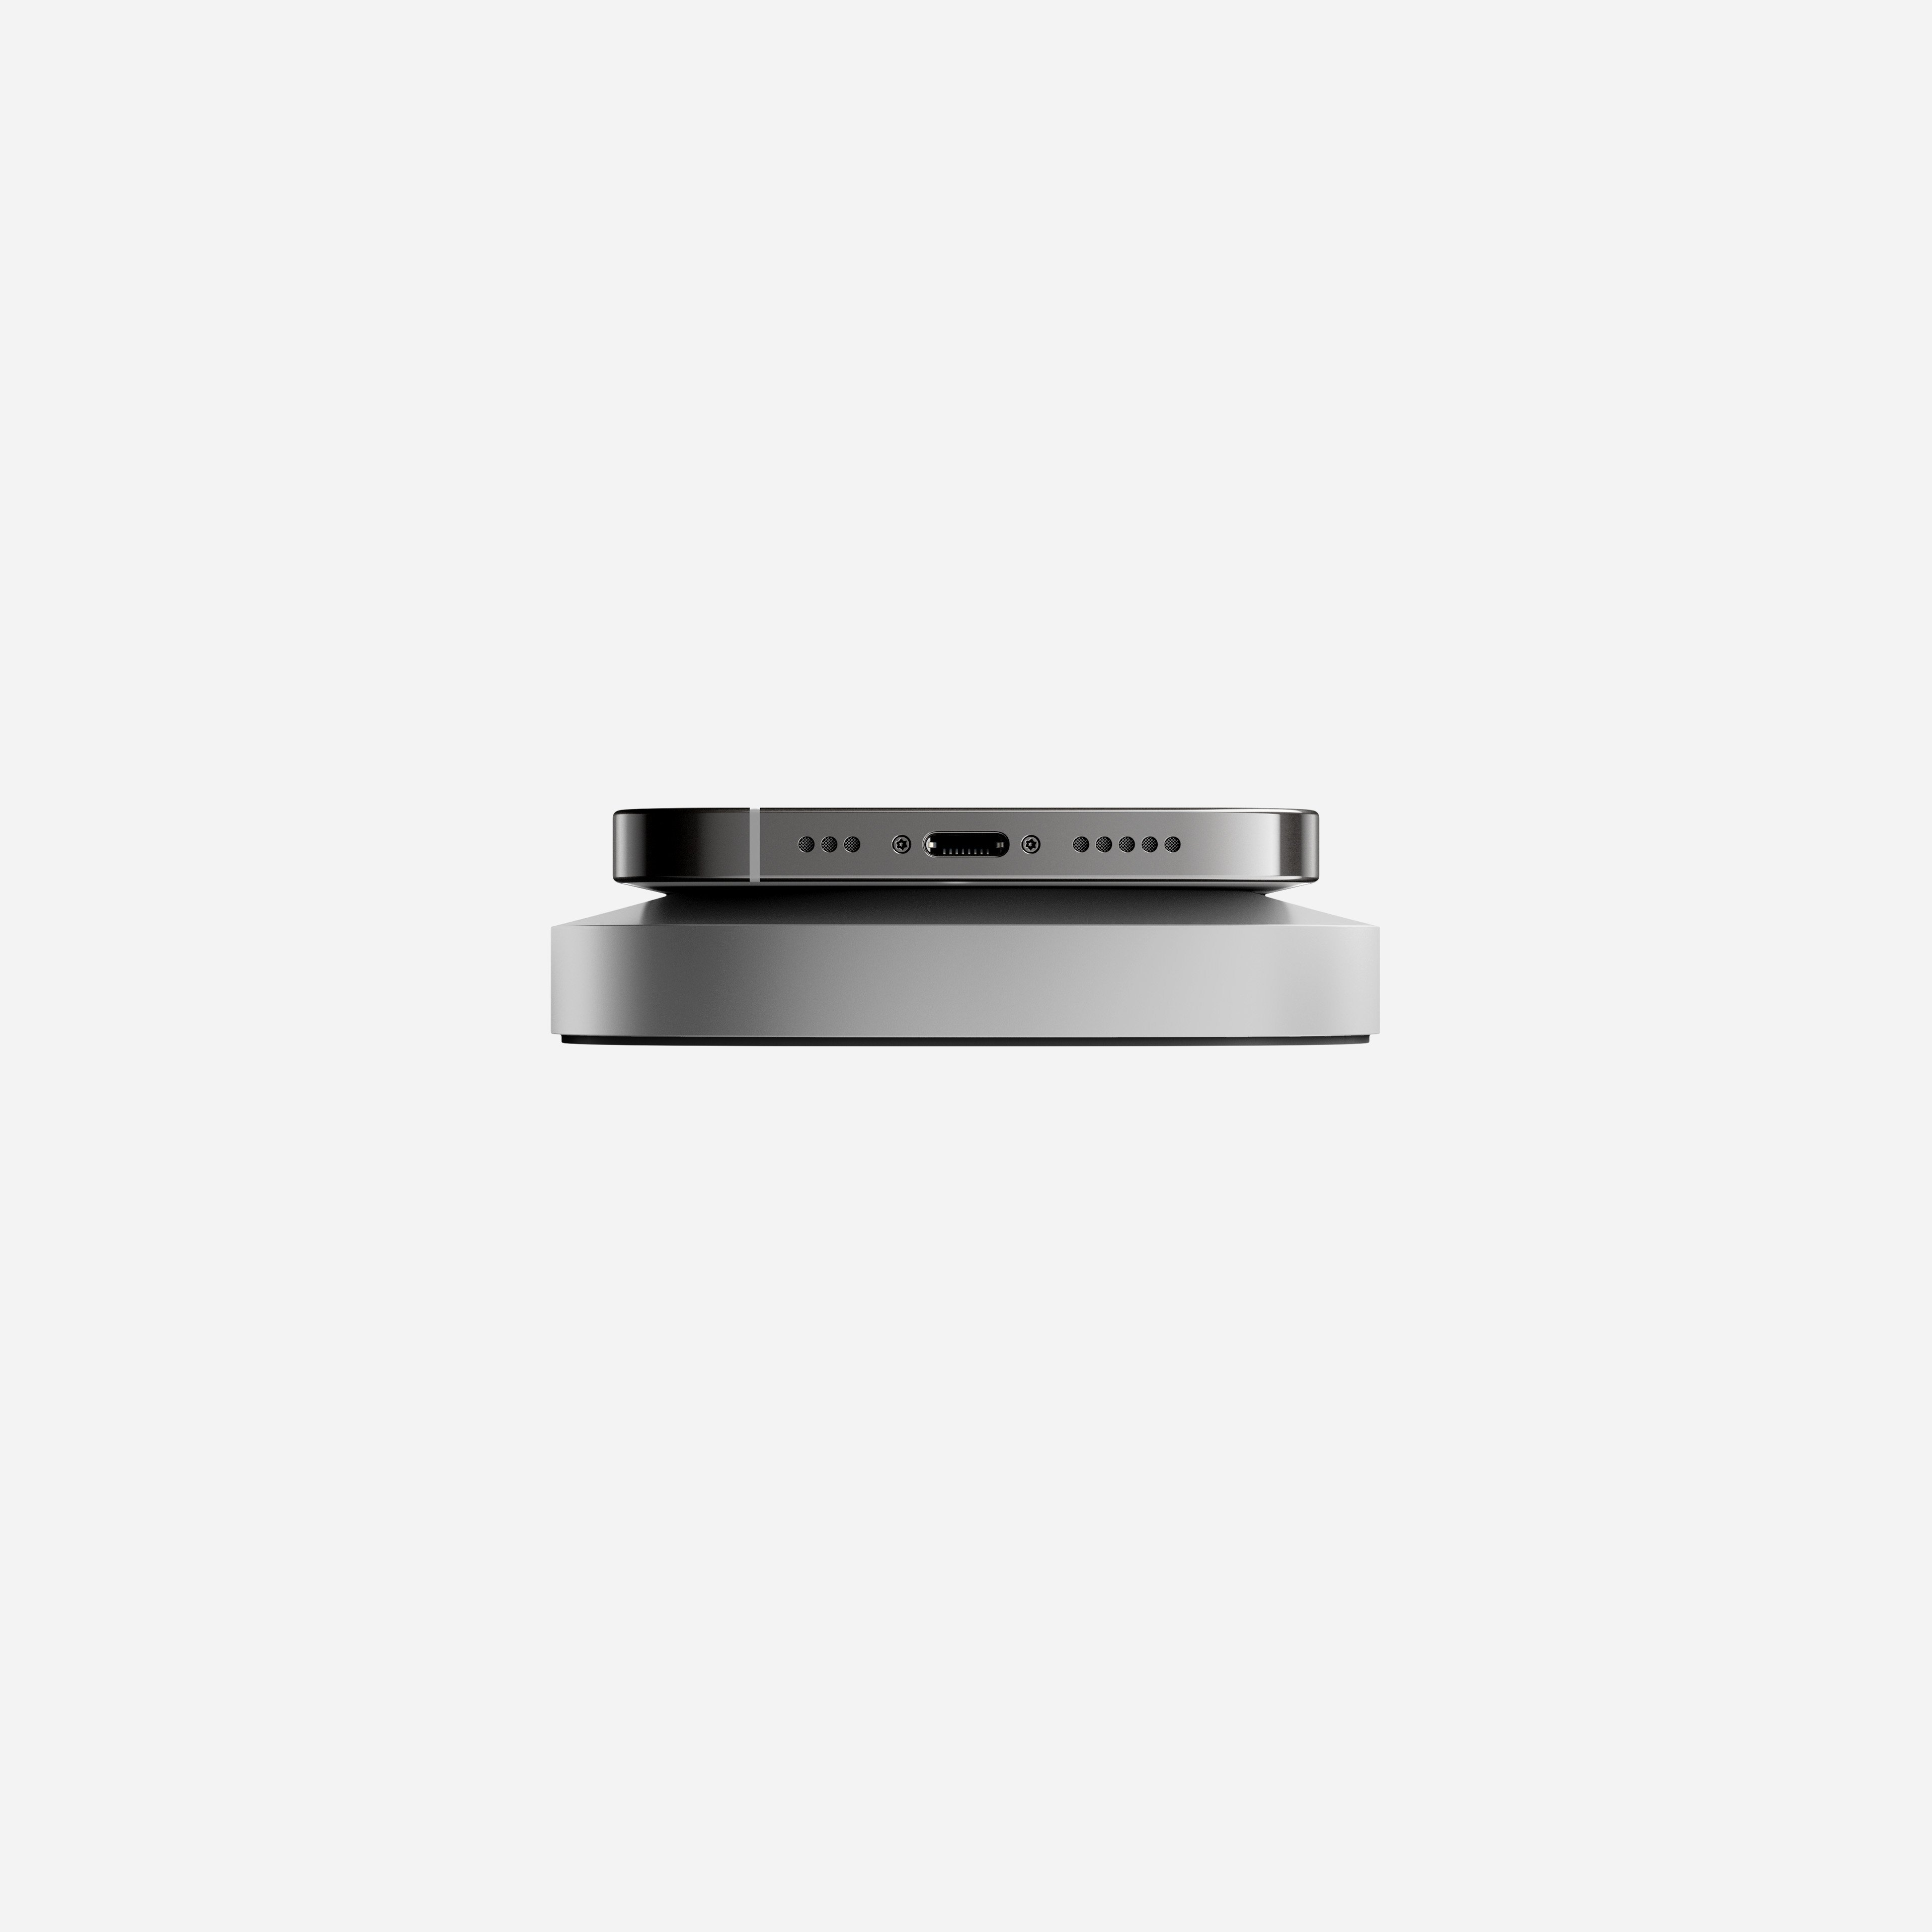 MagSafe Mount for iPhone 12 view from the front | Nomad®